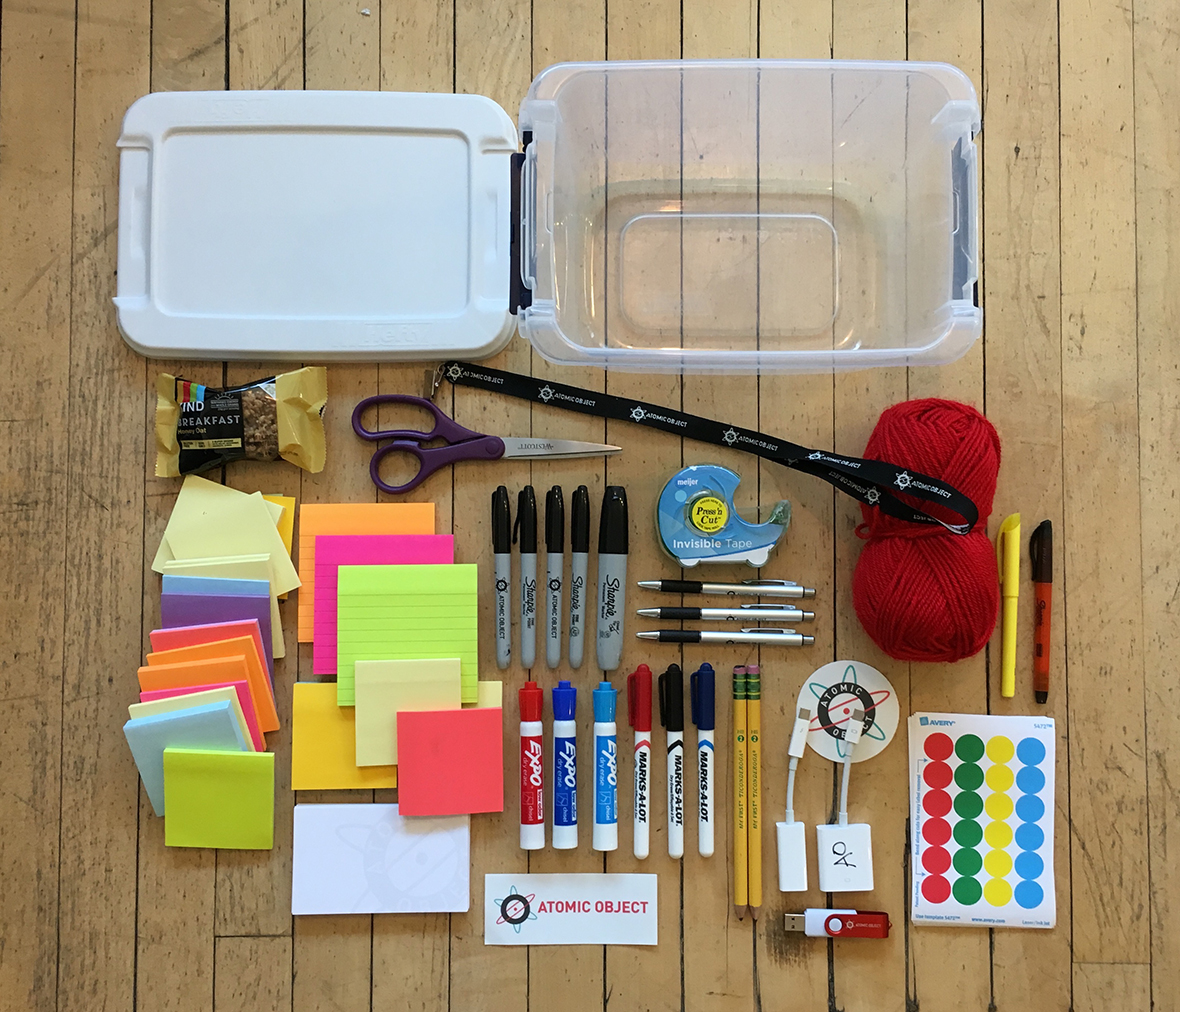 Picture of prototyping supplies: post-it notes, pens, scissors, stickers, yarn, tape, etc.